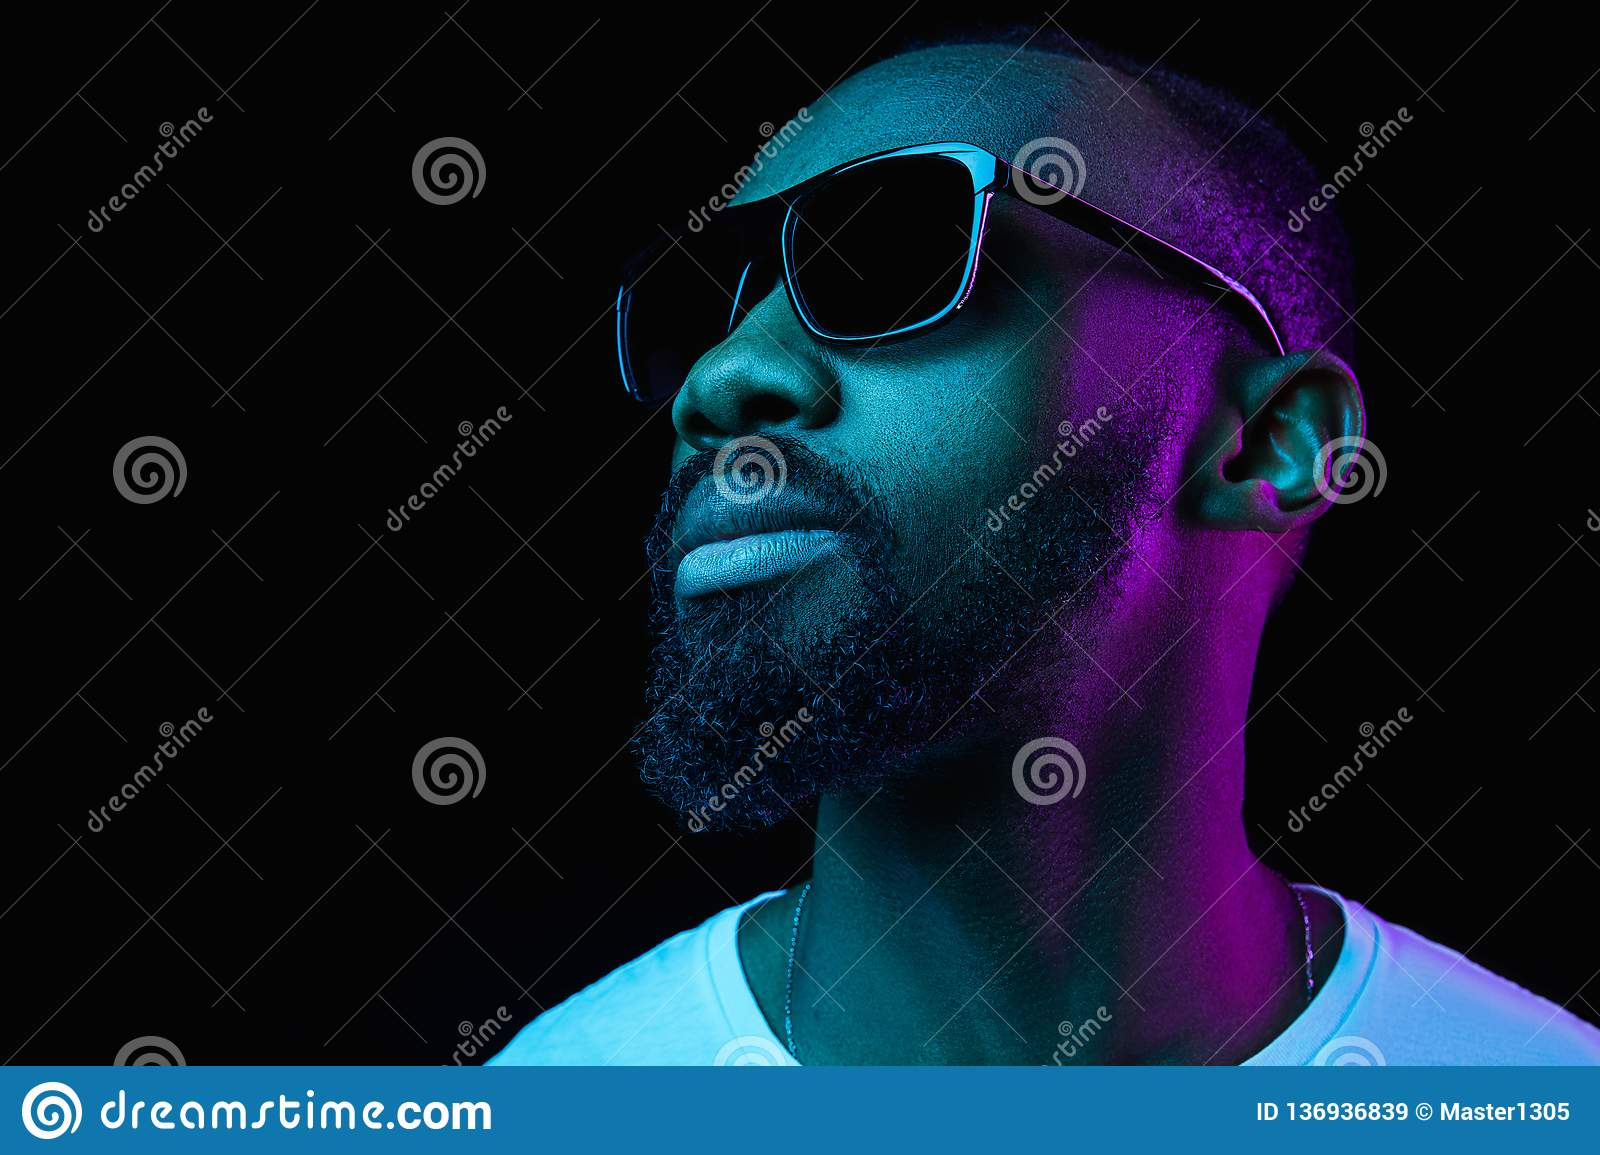 Premium Photo   Jumping high. african-american young mans portrait on gradient background in